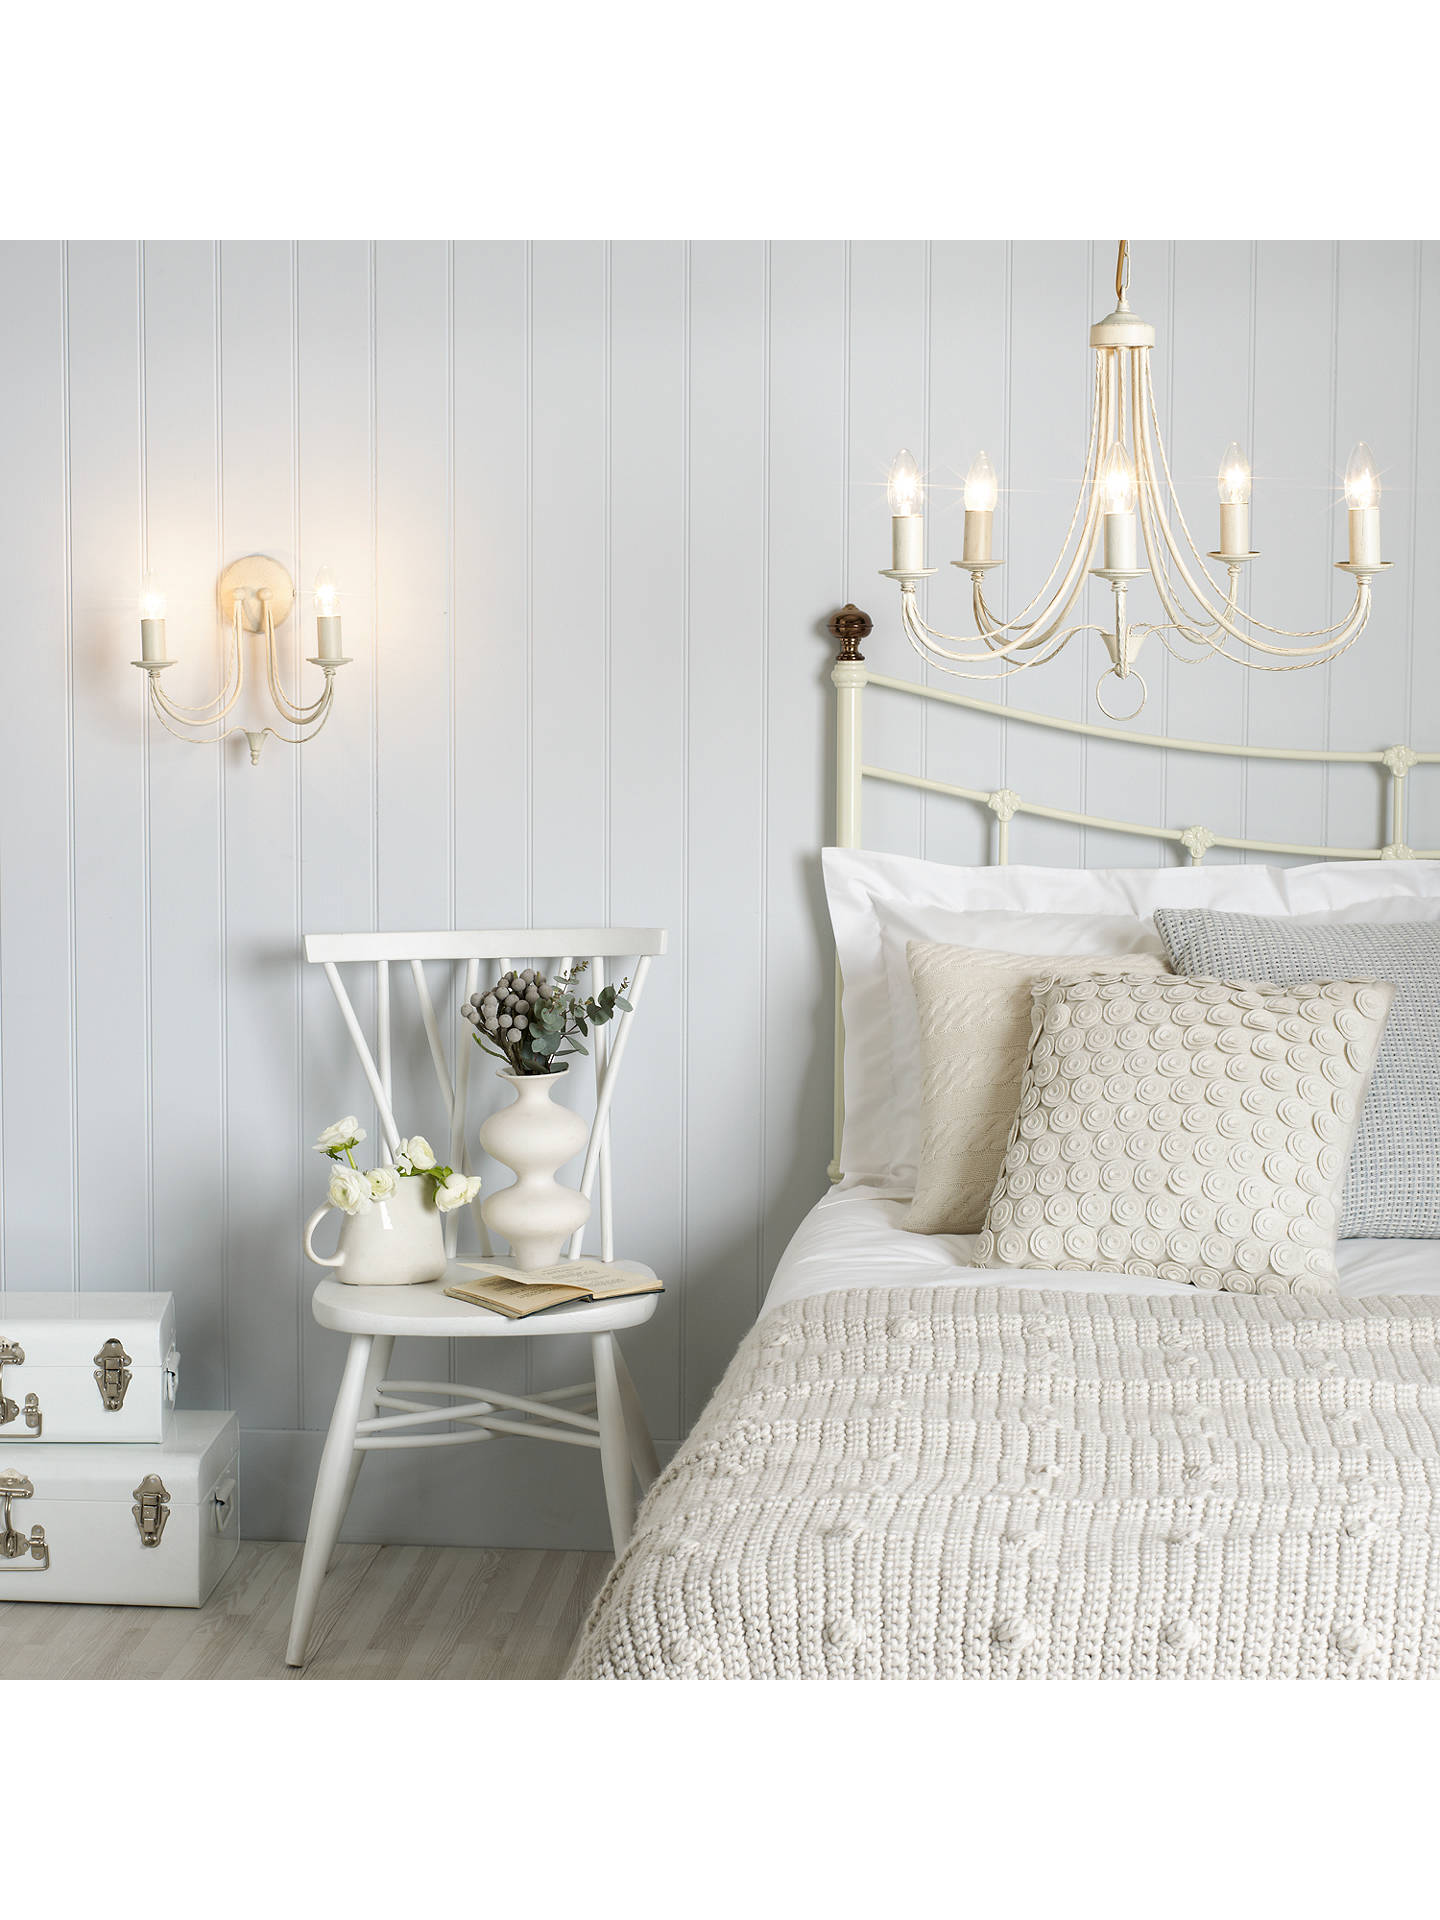 Buy John Lewis & Partners Jubilee 2 Arm Wall Light Online at johnlewis.com